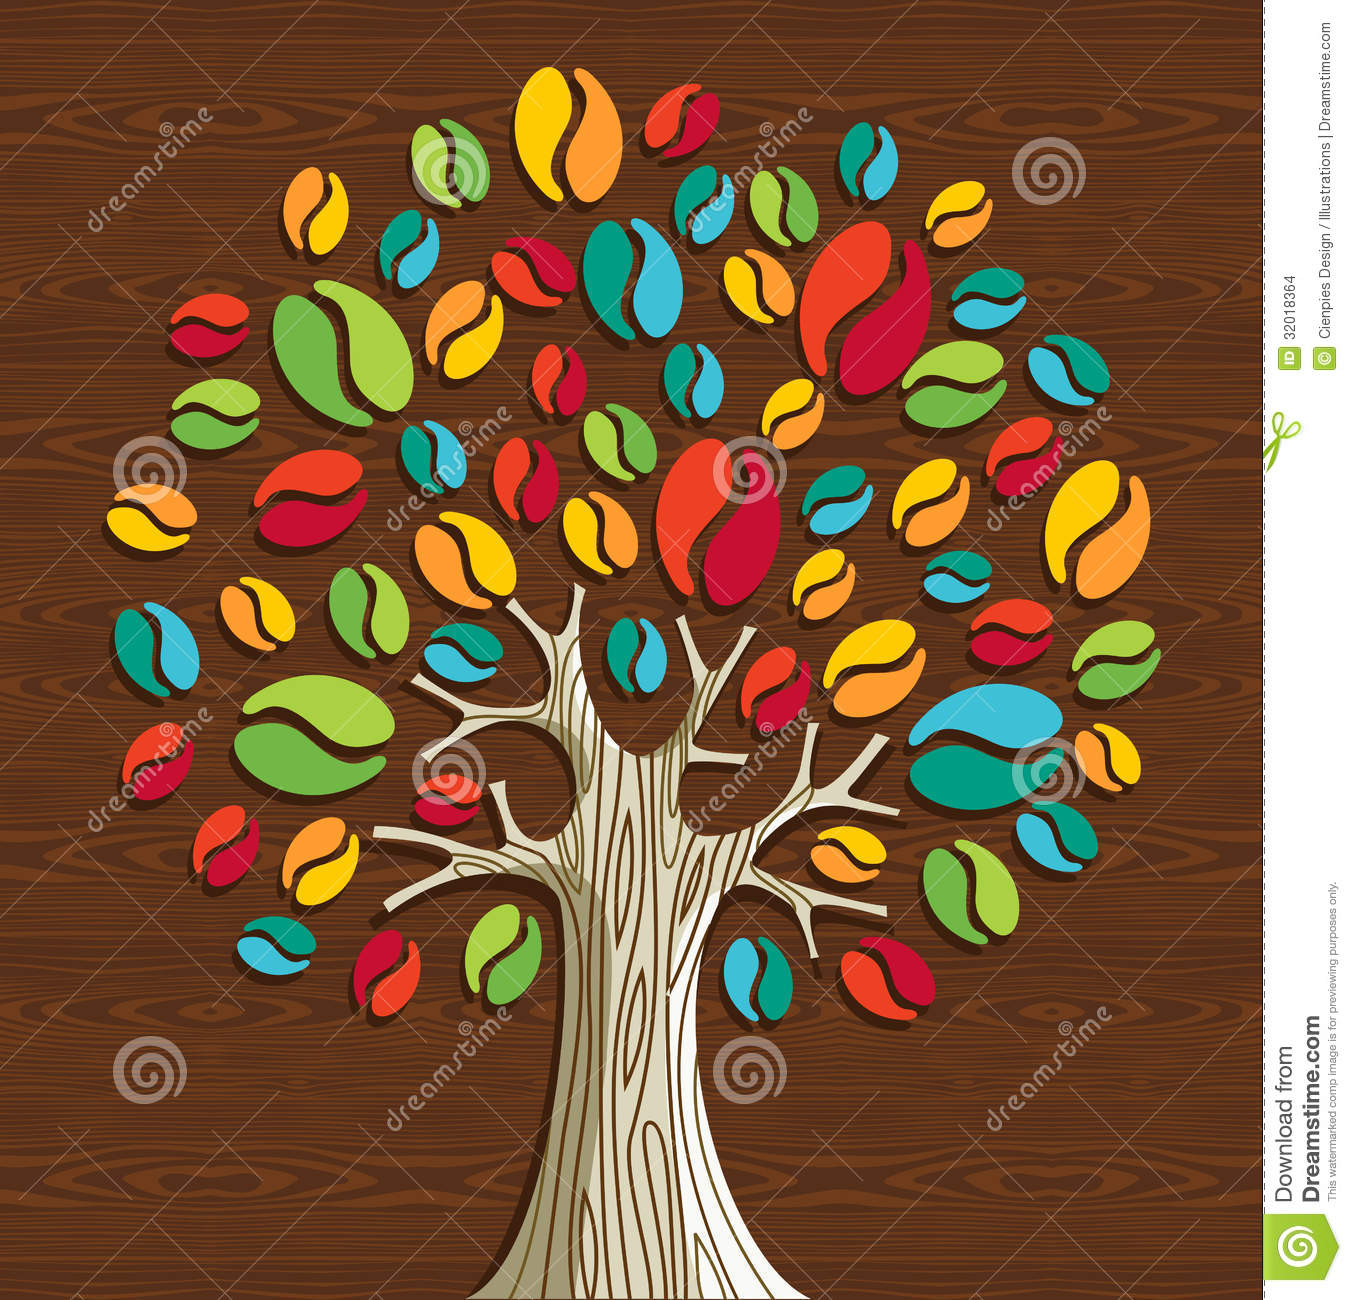 Coffee beans tree stock vector. Illustration of plant ...